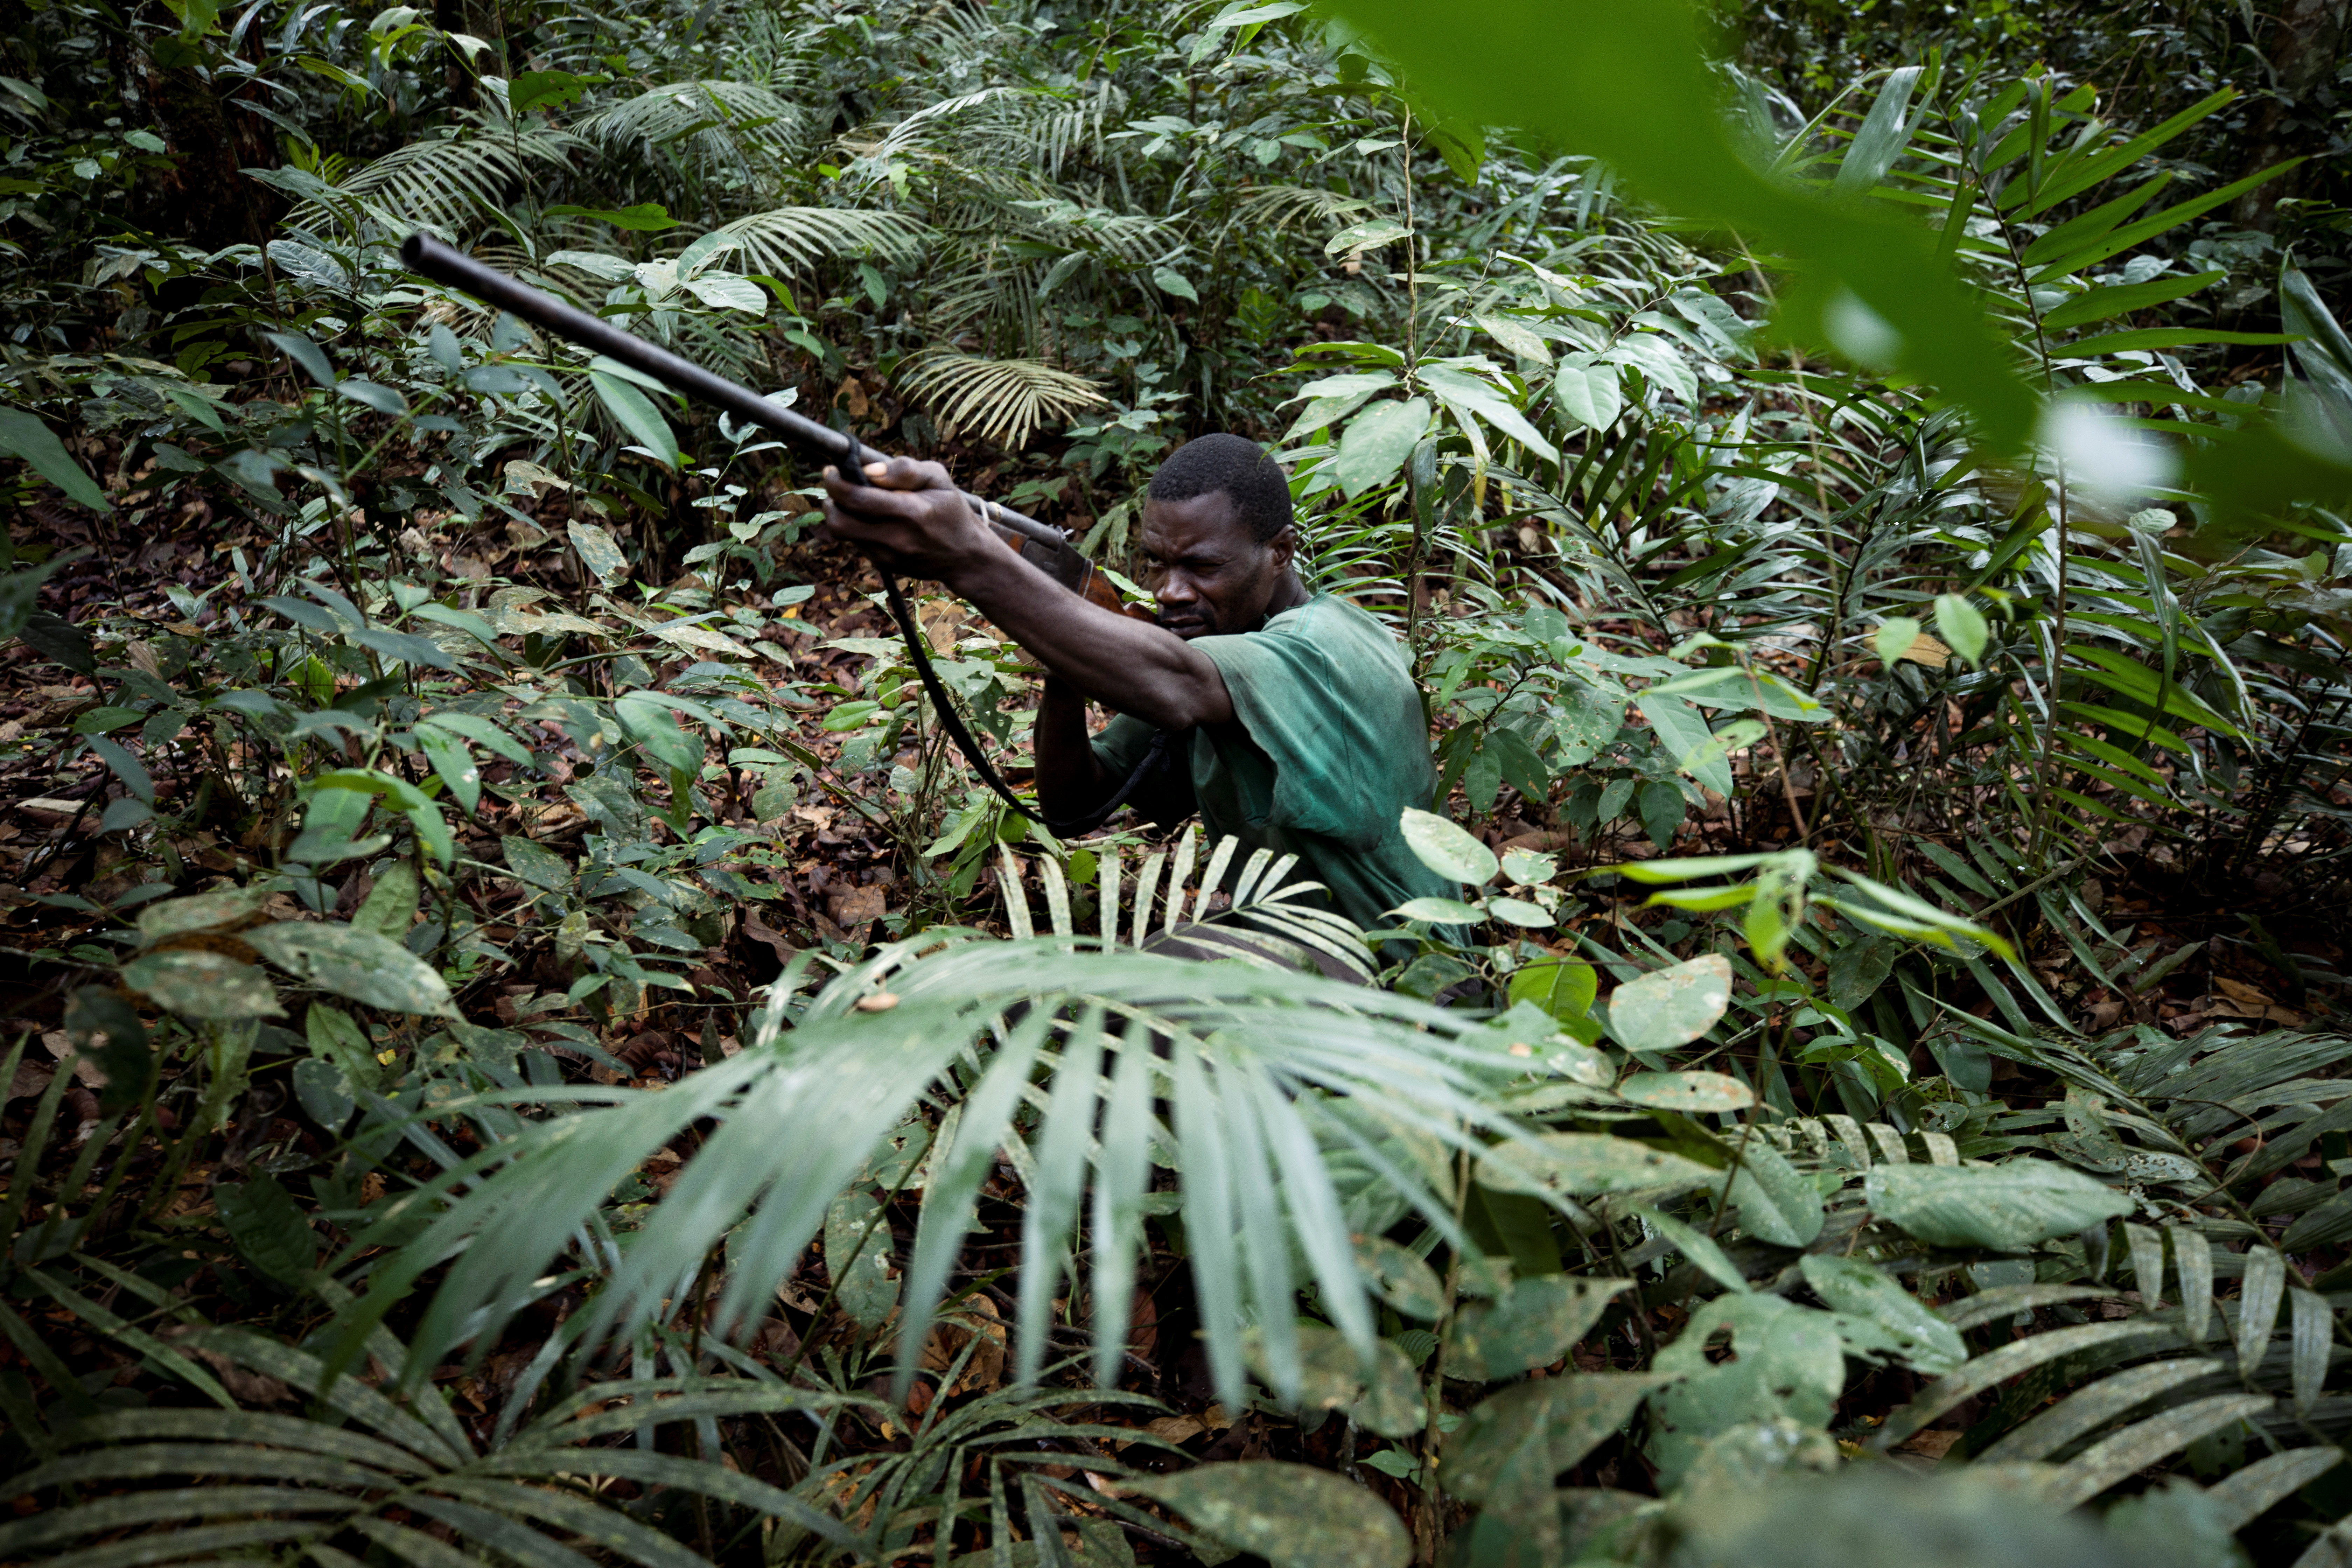 And without a replenishment of soil moisture, the dry season is ending later, which postpones the start of the next wet season and hinders vegetation regrowth. Hunters From The Congo Are Illegally Poaching Bush Meat To Feed Their Families In Hard Times World Economic Forum